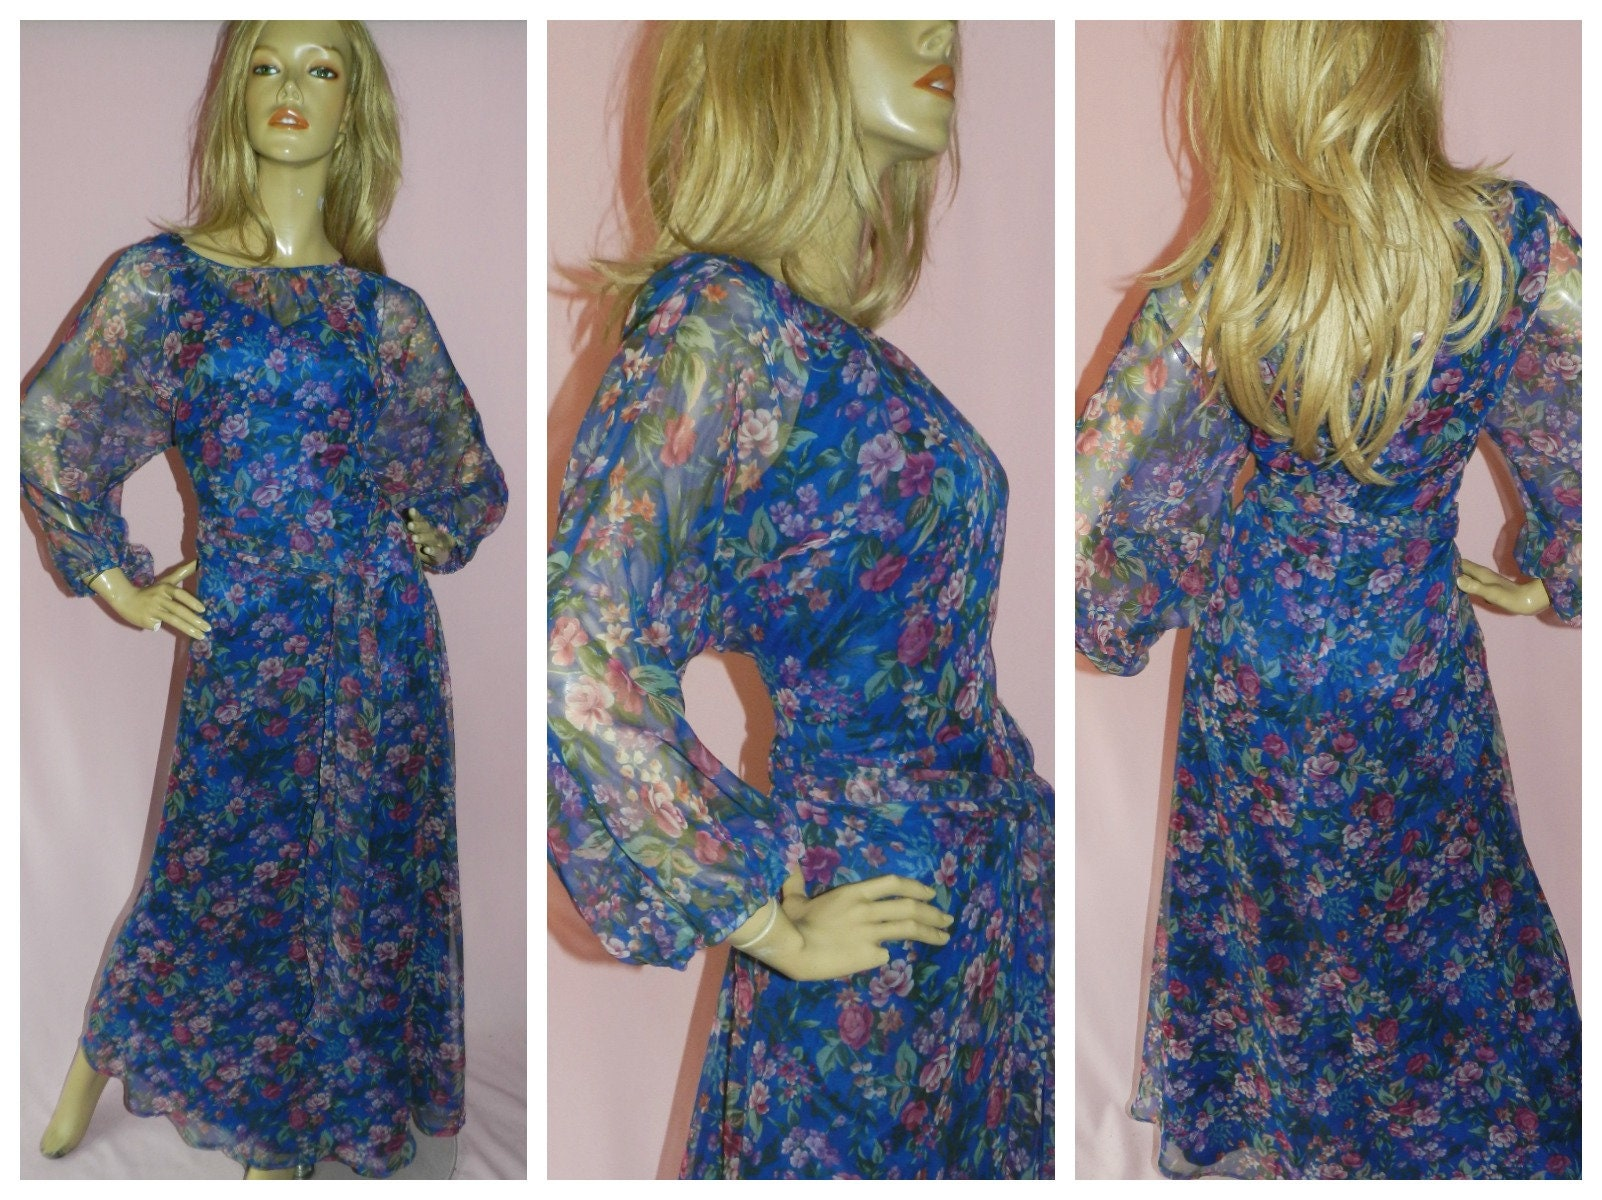 6dac3909a8 VINTAGE 70s Blue Multicoloured FLORAL Rose Print Chiffon floaty maxi dress  12-14 M 1970s Bohemian EVENING Party Sheer sleeves